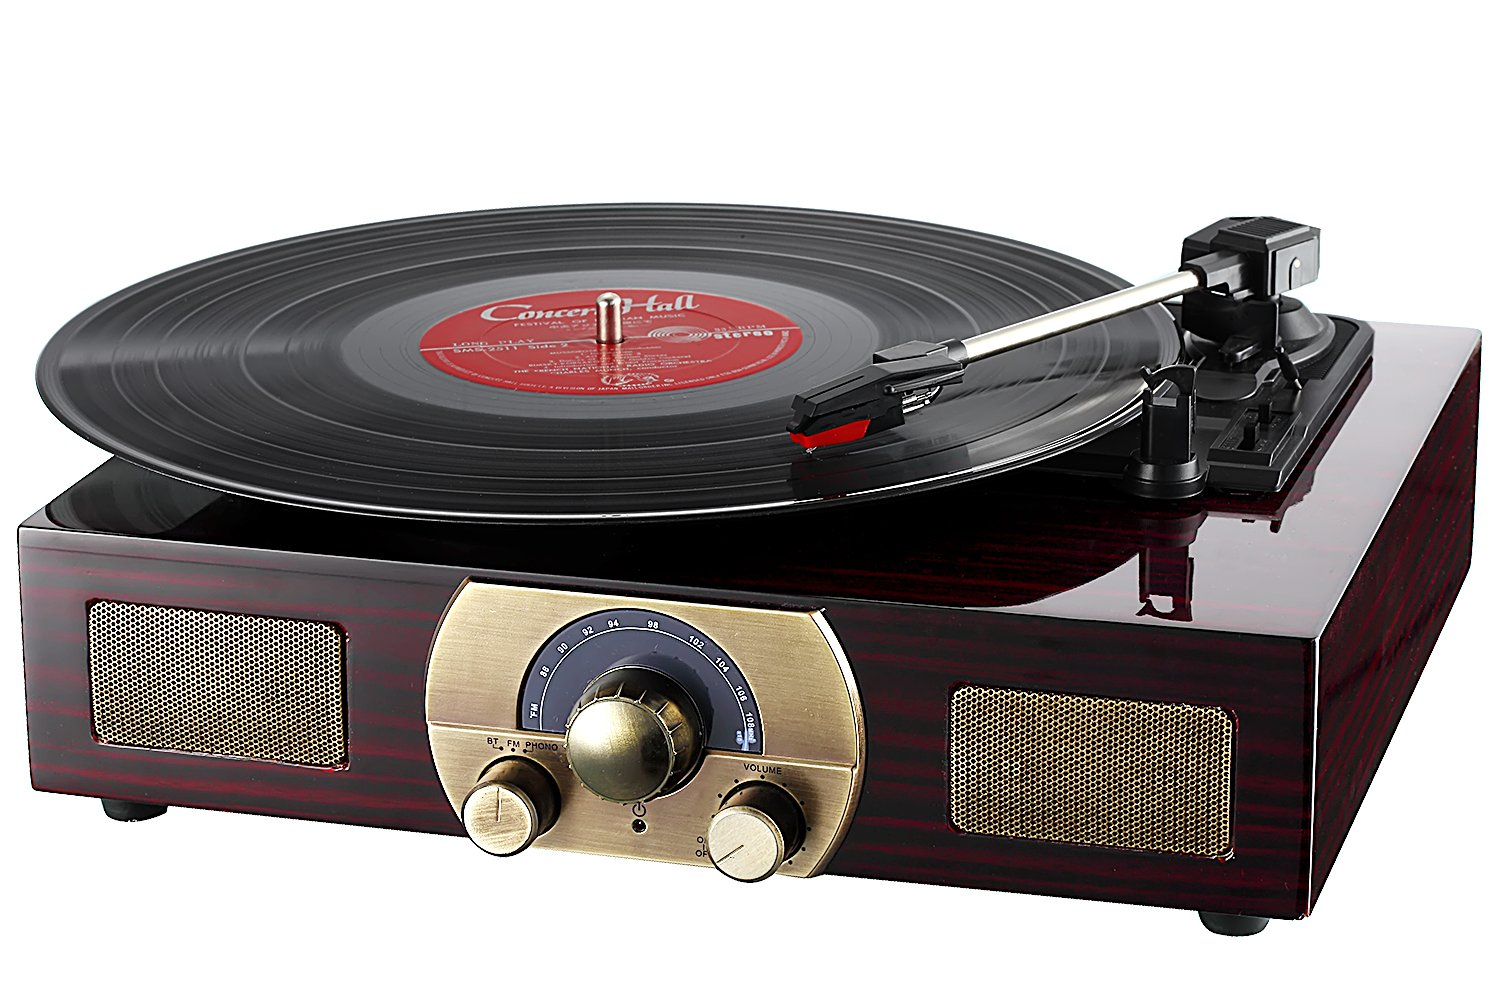 LuguLake Stereo 3-Speed Turntable with Built-In Bluetooth Speakers, Record Player, FM Radio and RCA Output, Vintage Phonograph with Retro Wooden Finish (TN01) by LuguLake